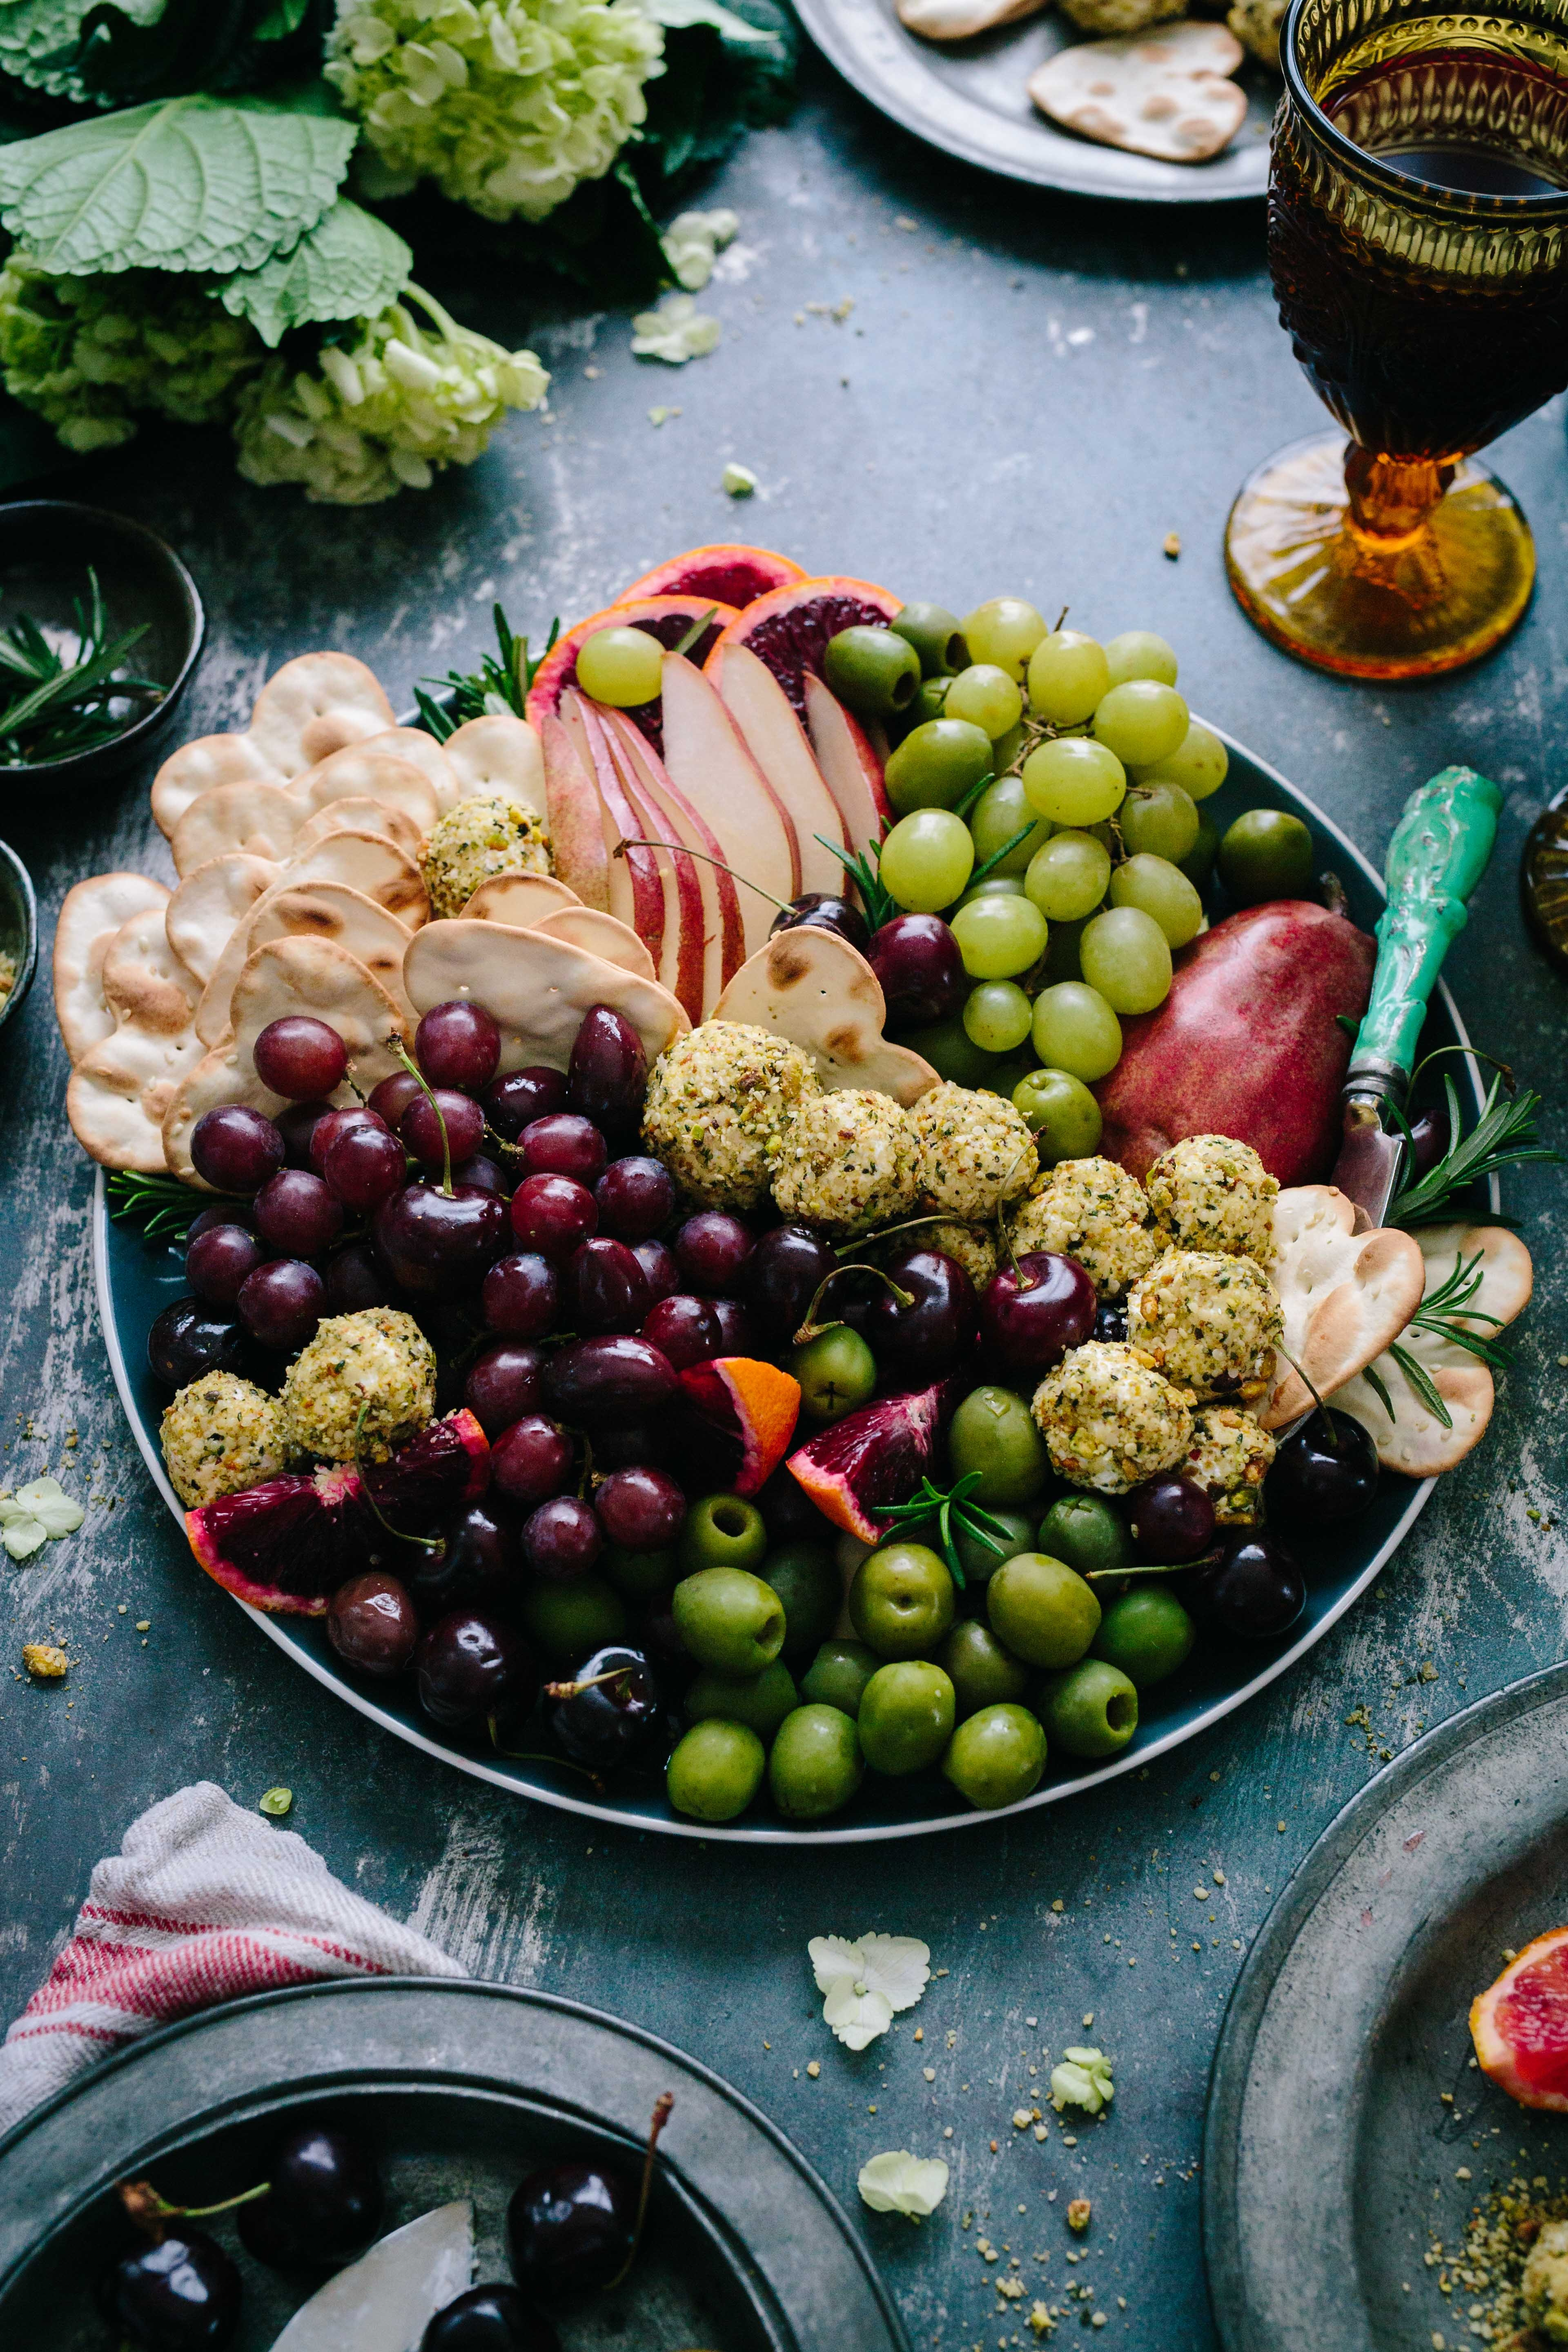 Is A Mediterranean Diet More Effective For Weight Management And Heart Health?